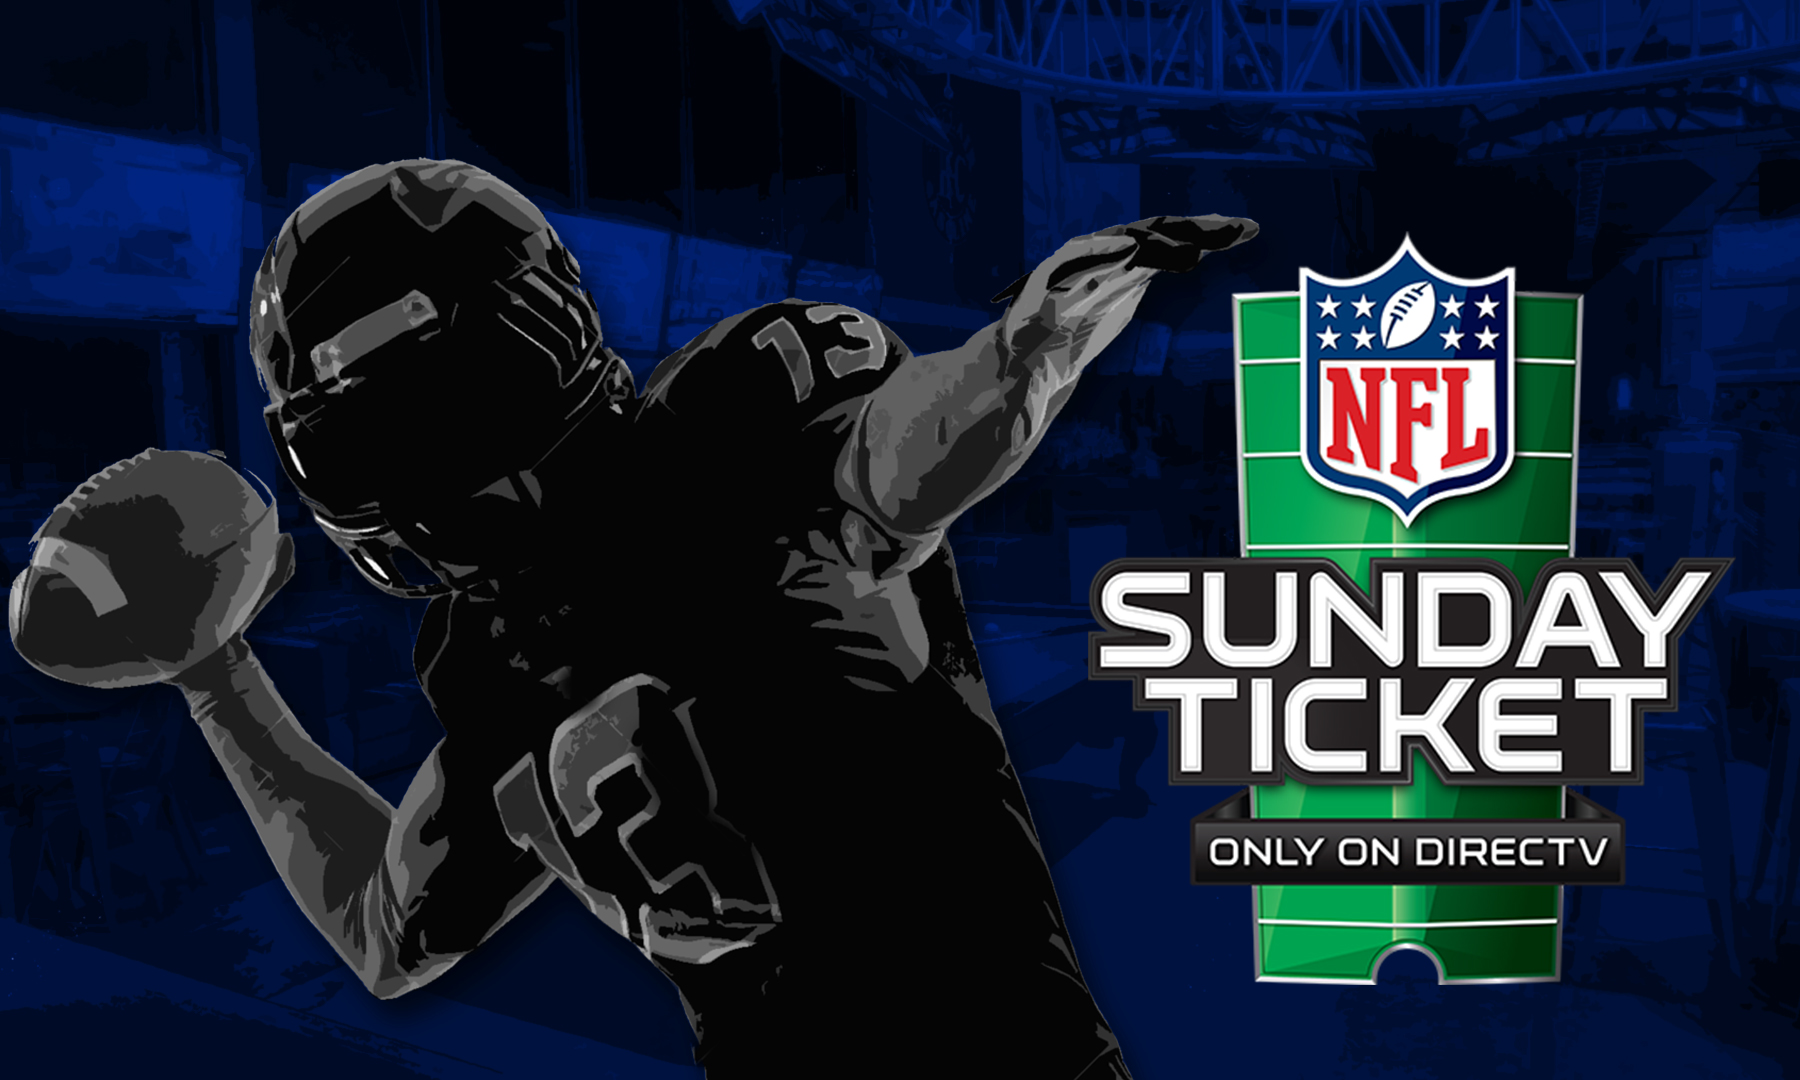 NFL Sunday Ticket – Watch Live Football Games